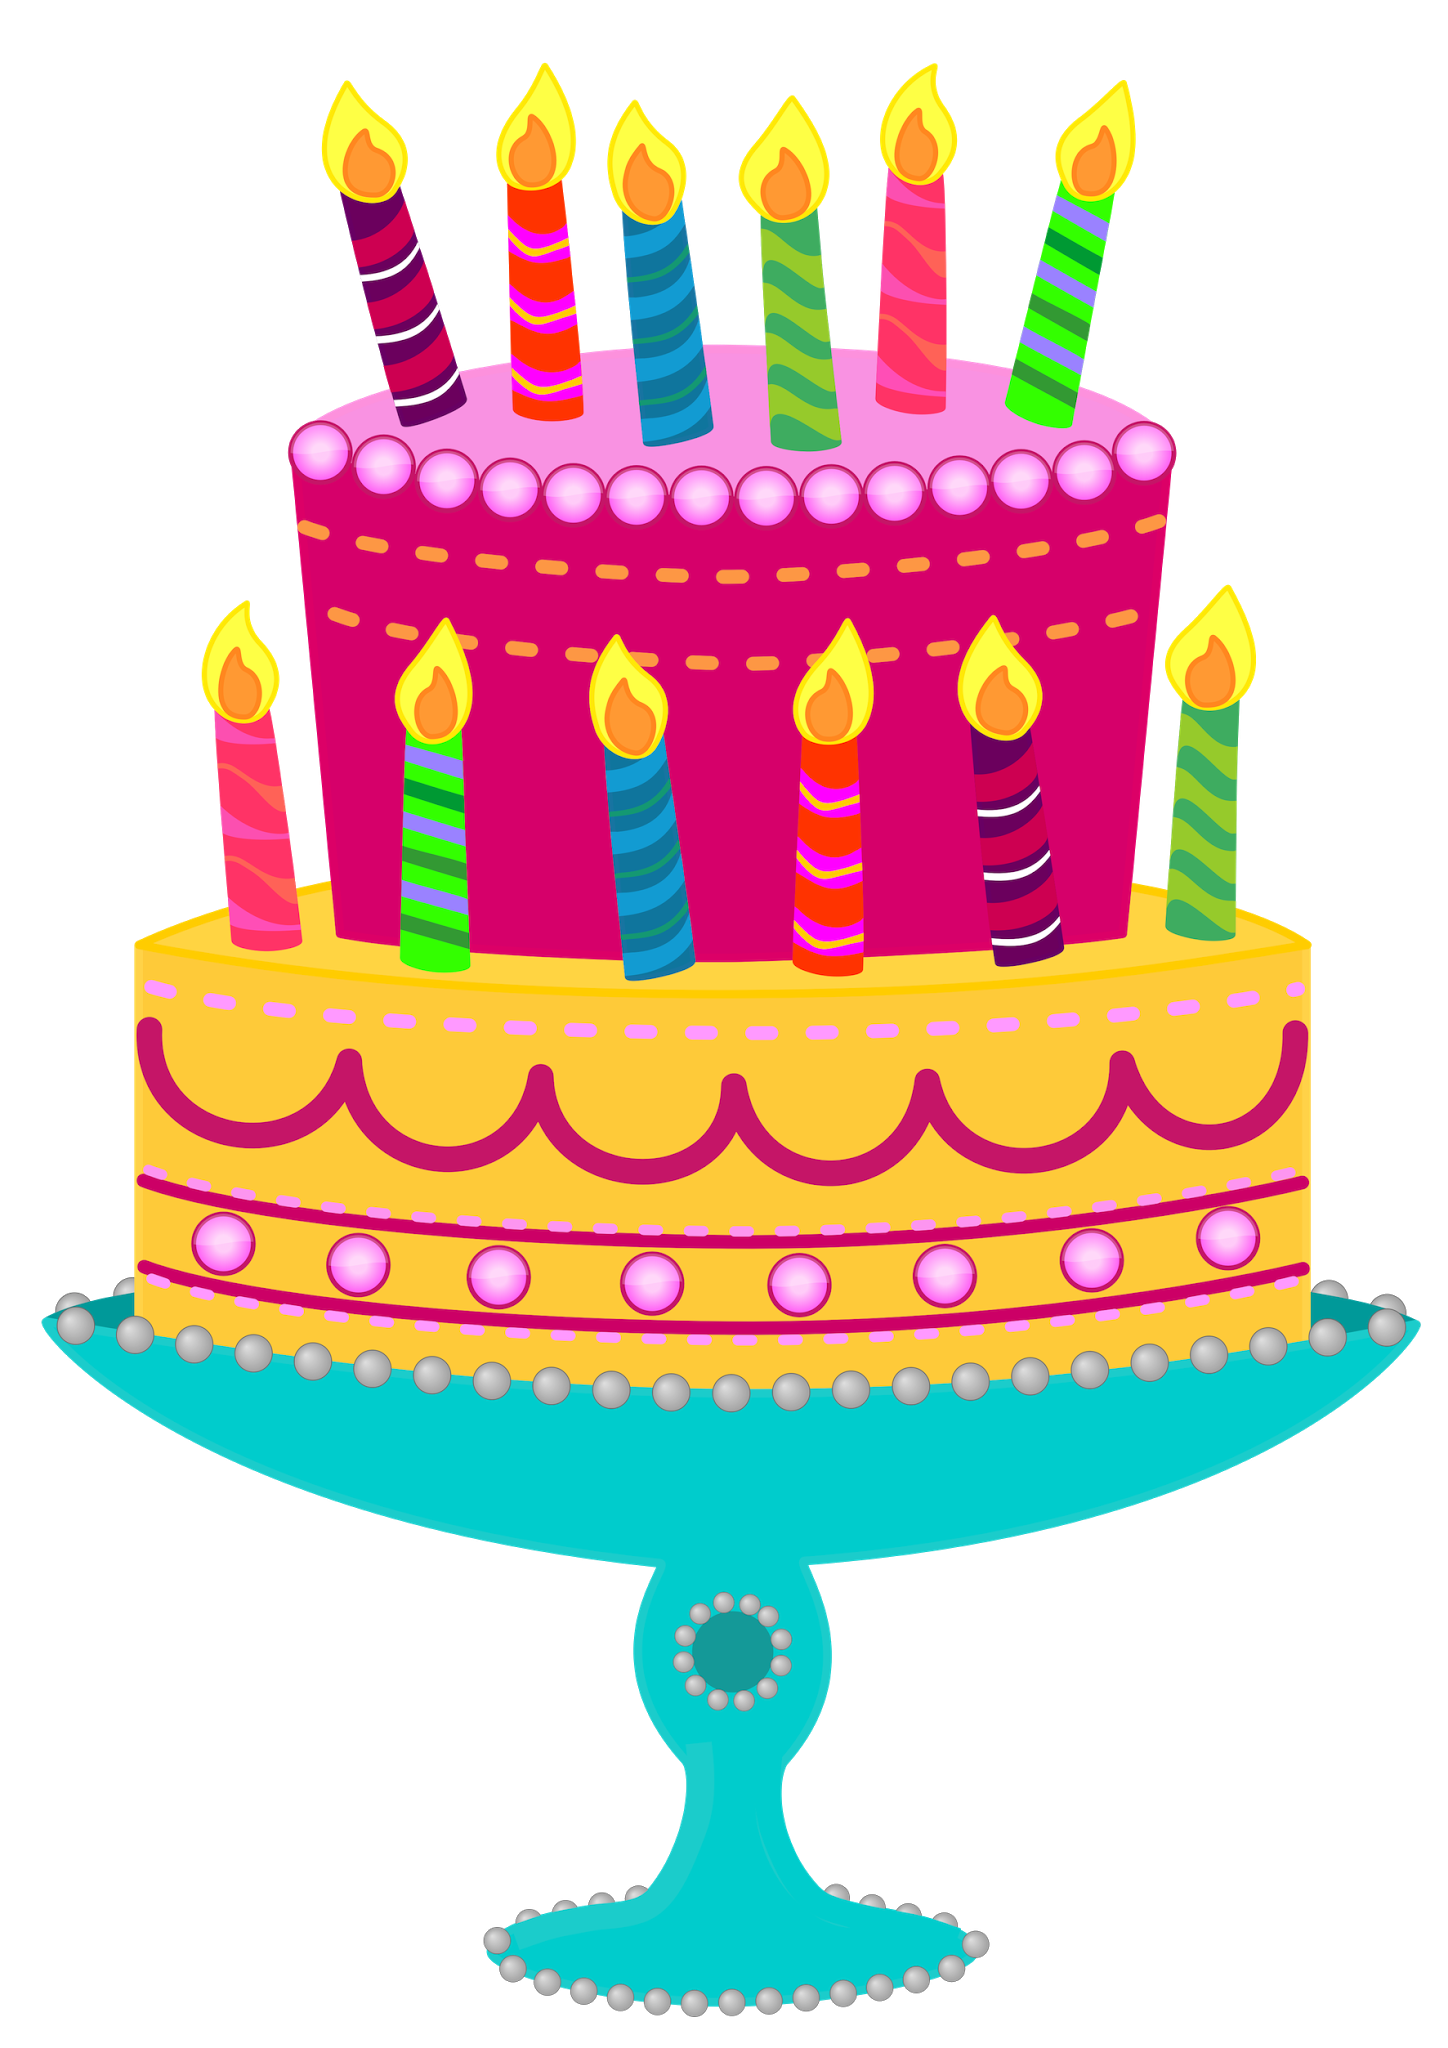 Clip Art Of Birthday Cake With Candles : Free Cake Images - Cliparts.co Paper Images Pinterest ...